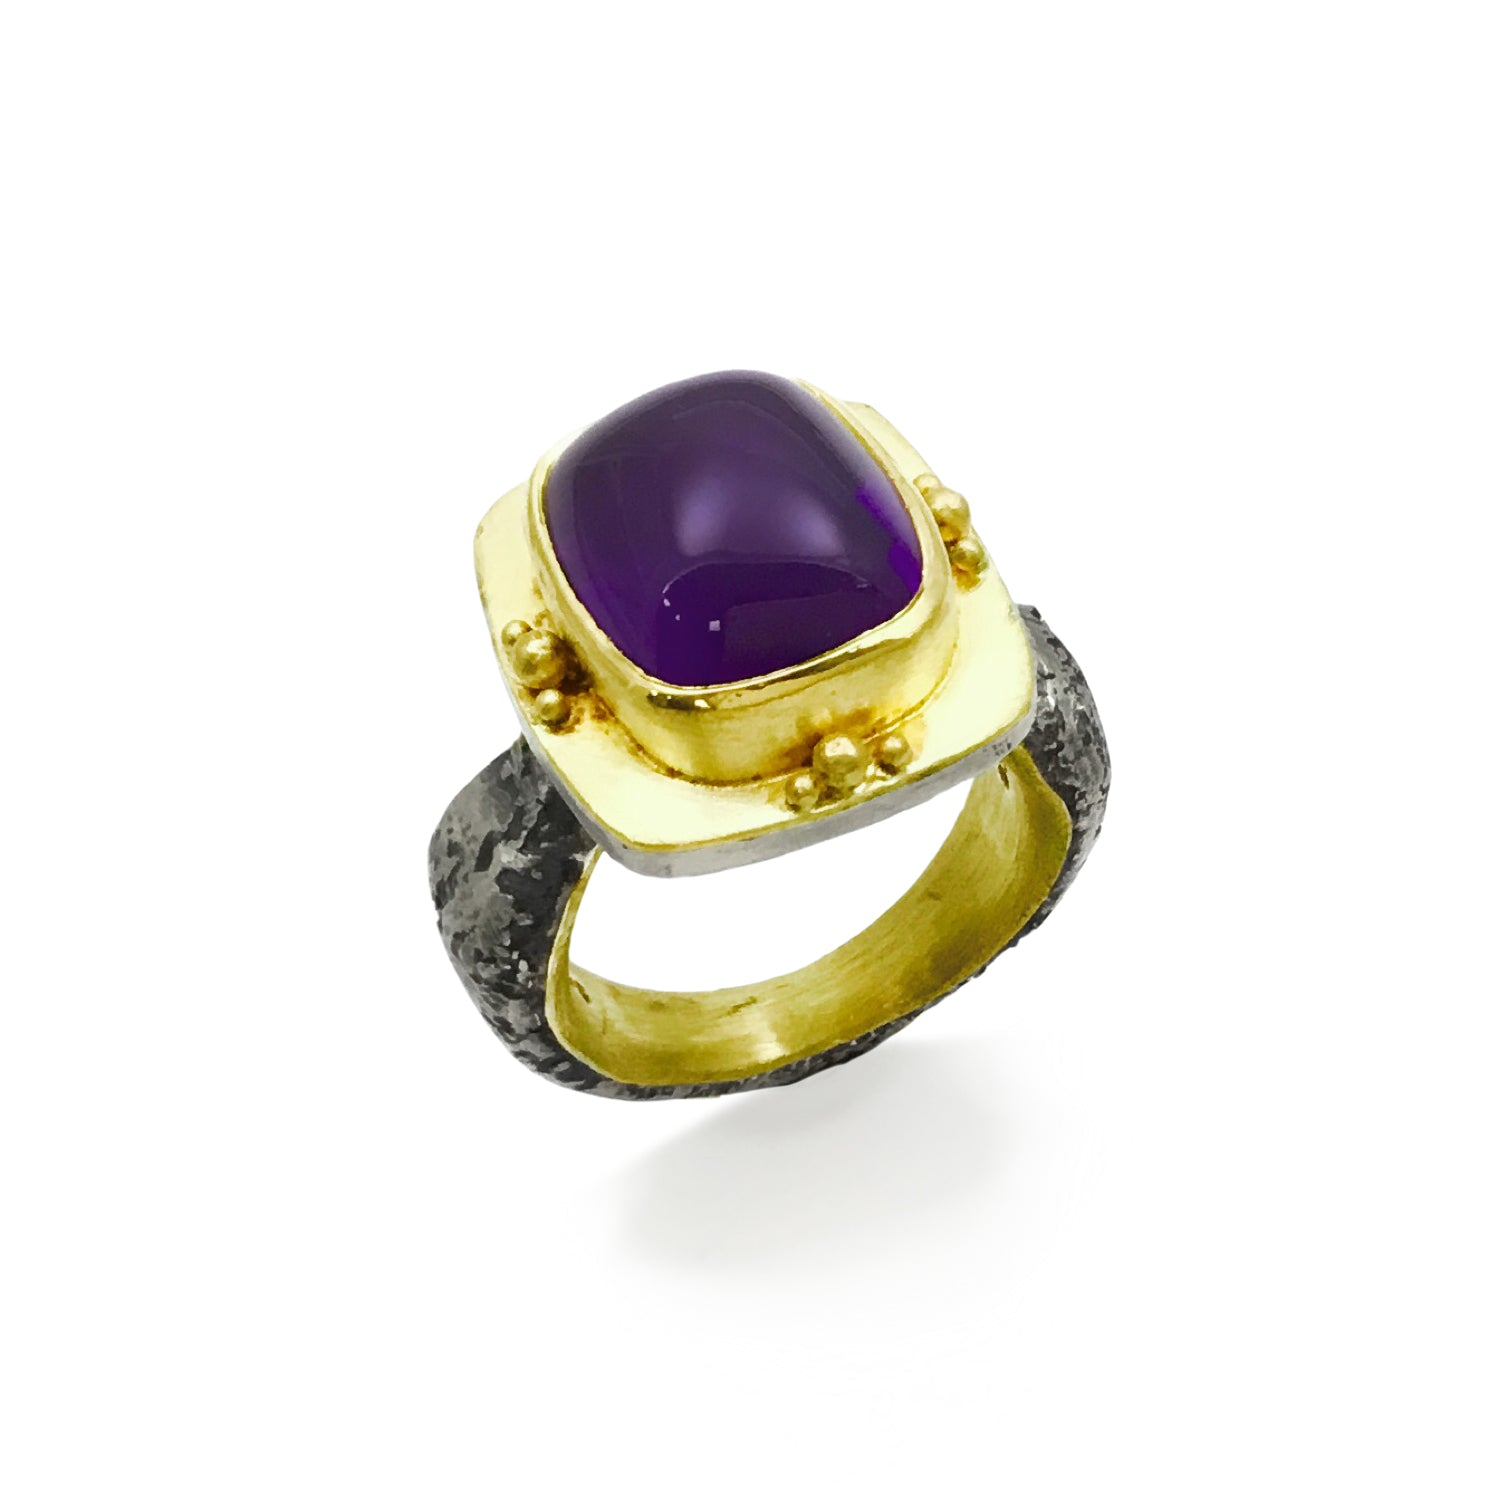 Cabochon Amethyst Ring, 22K Yellow Gold and Sterling Silver